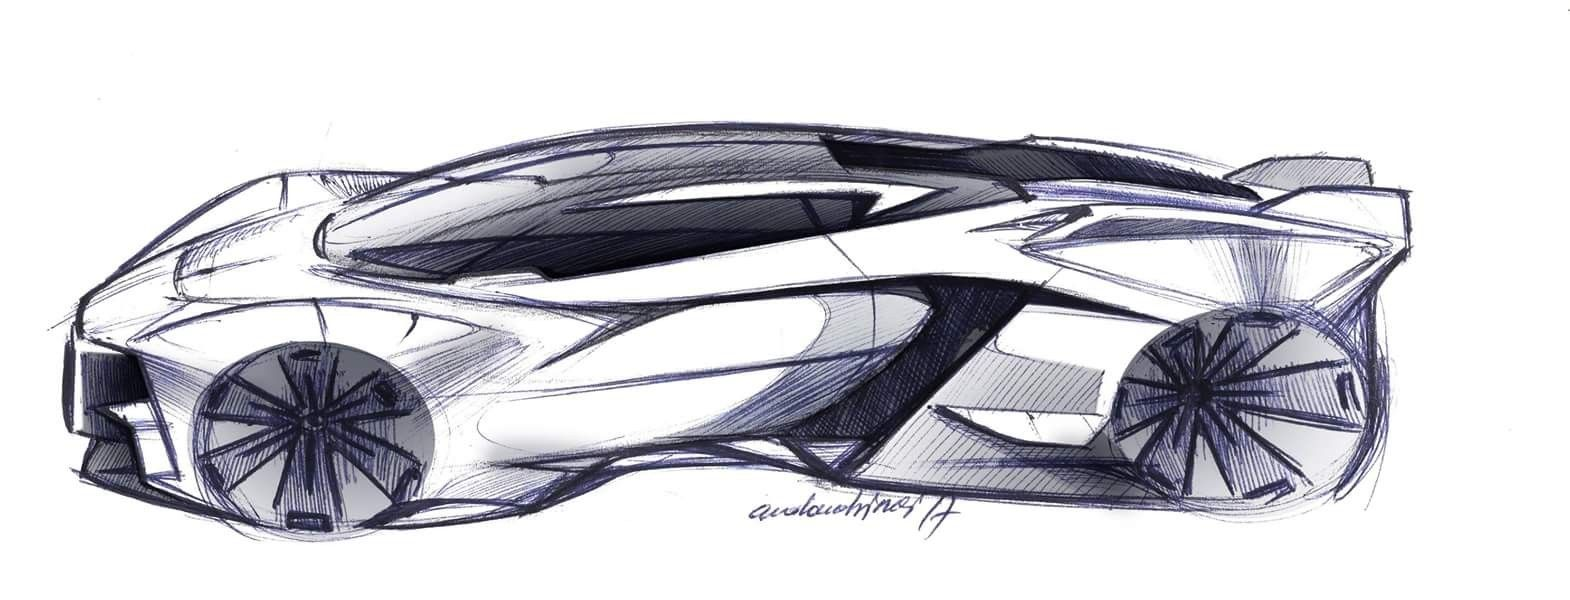 Pin By Avennon On Car Sketches Futuristic Cars Car Drawings Car Sketch